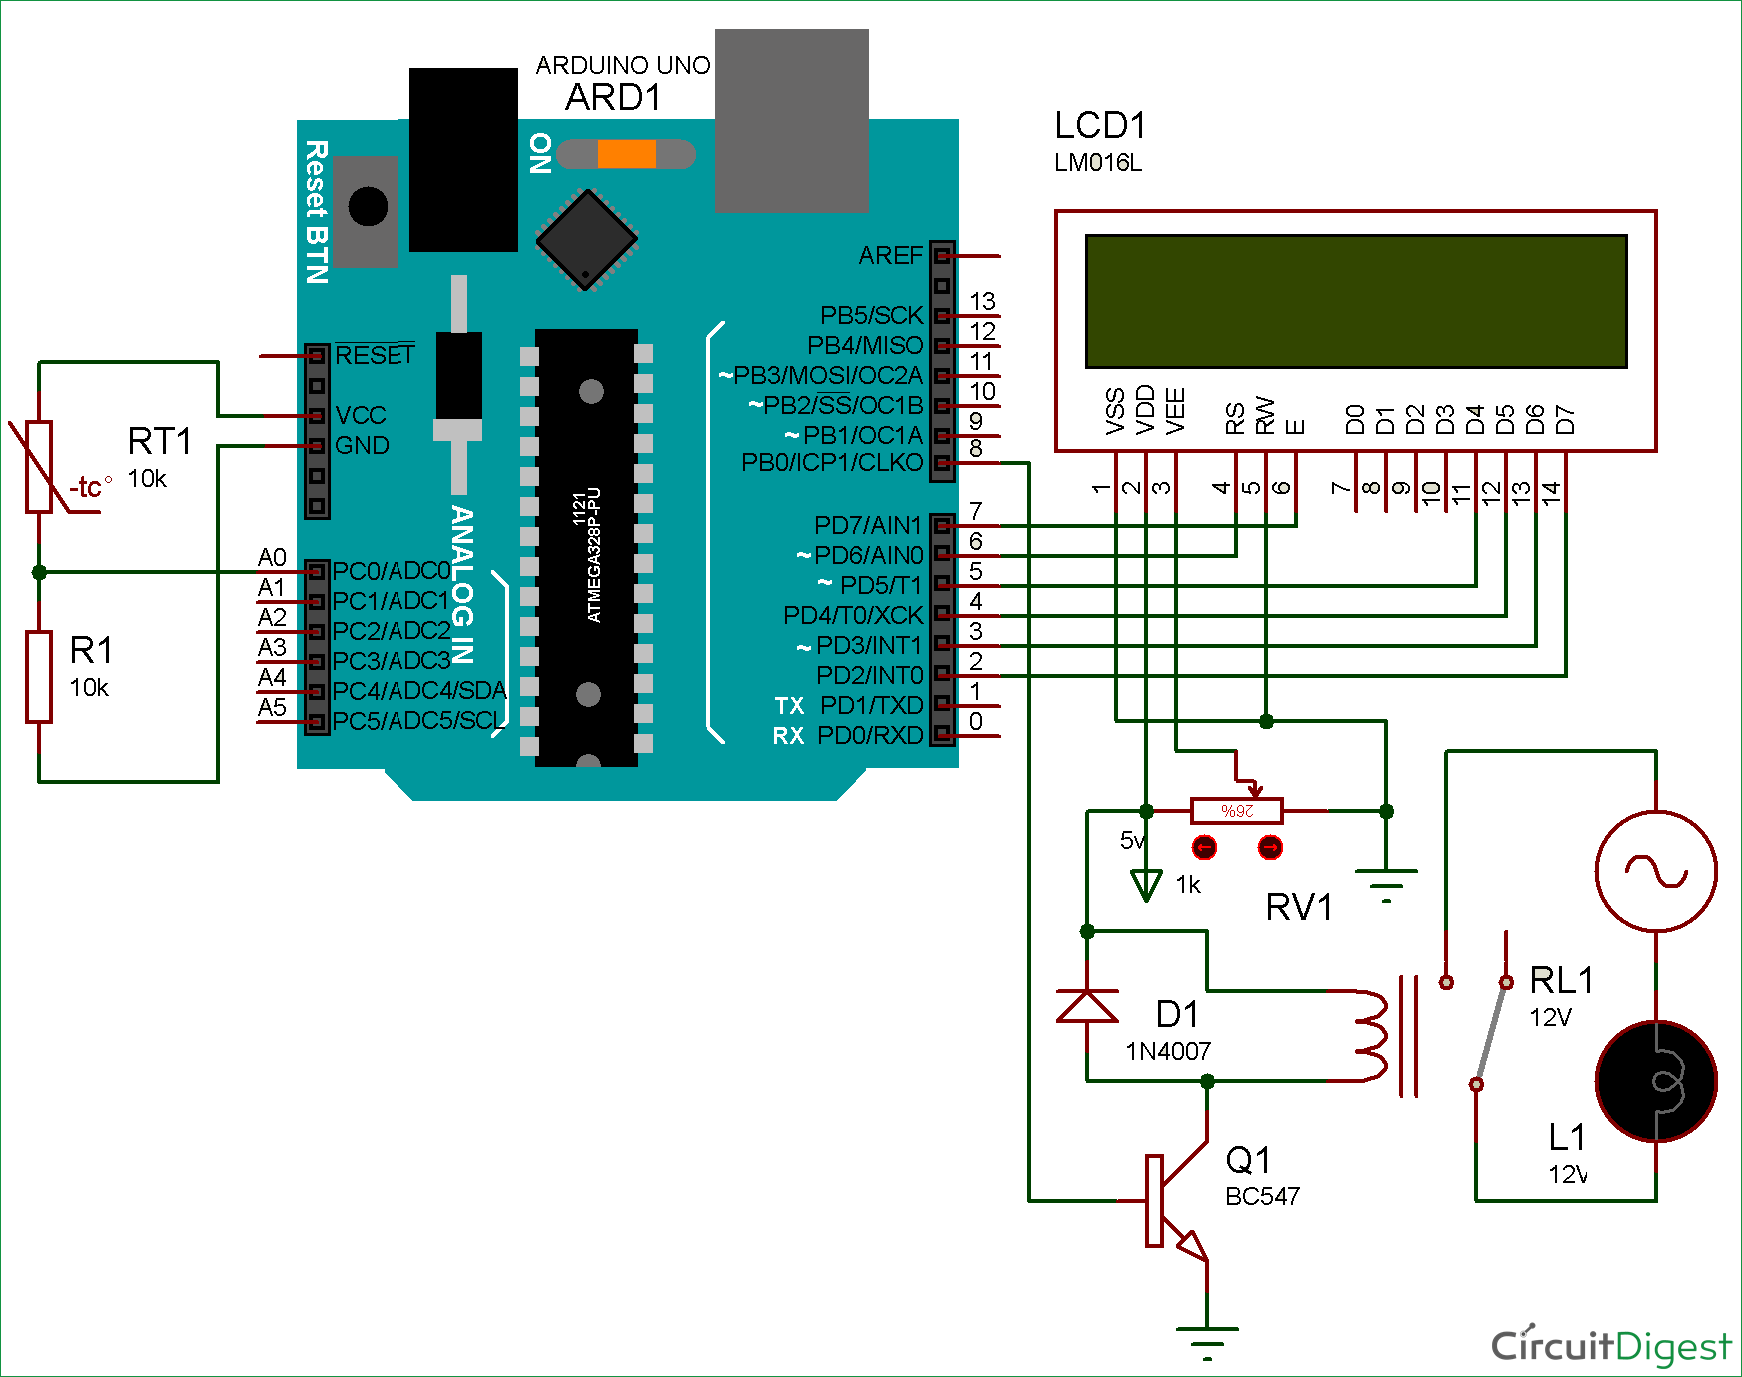 Circuit Diagram To Control Relay Using Arduino Based On Temperature 200m Fm Transmitter Electronic Circuits And Diagramelectronics